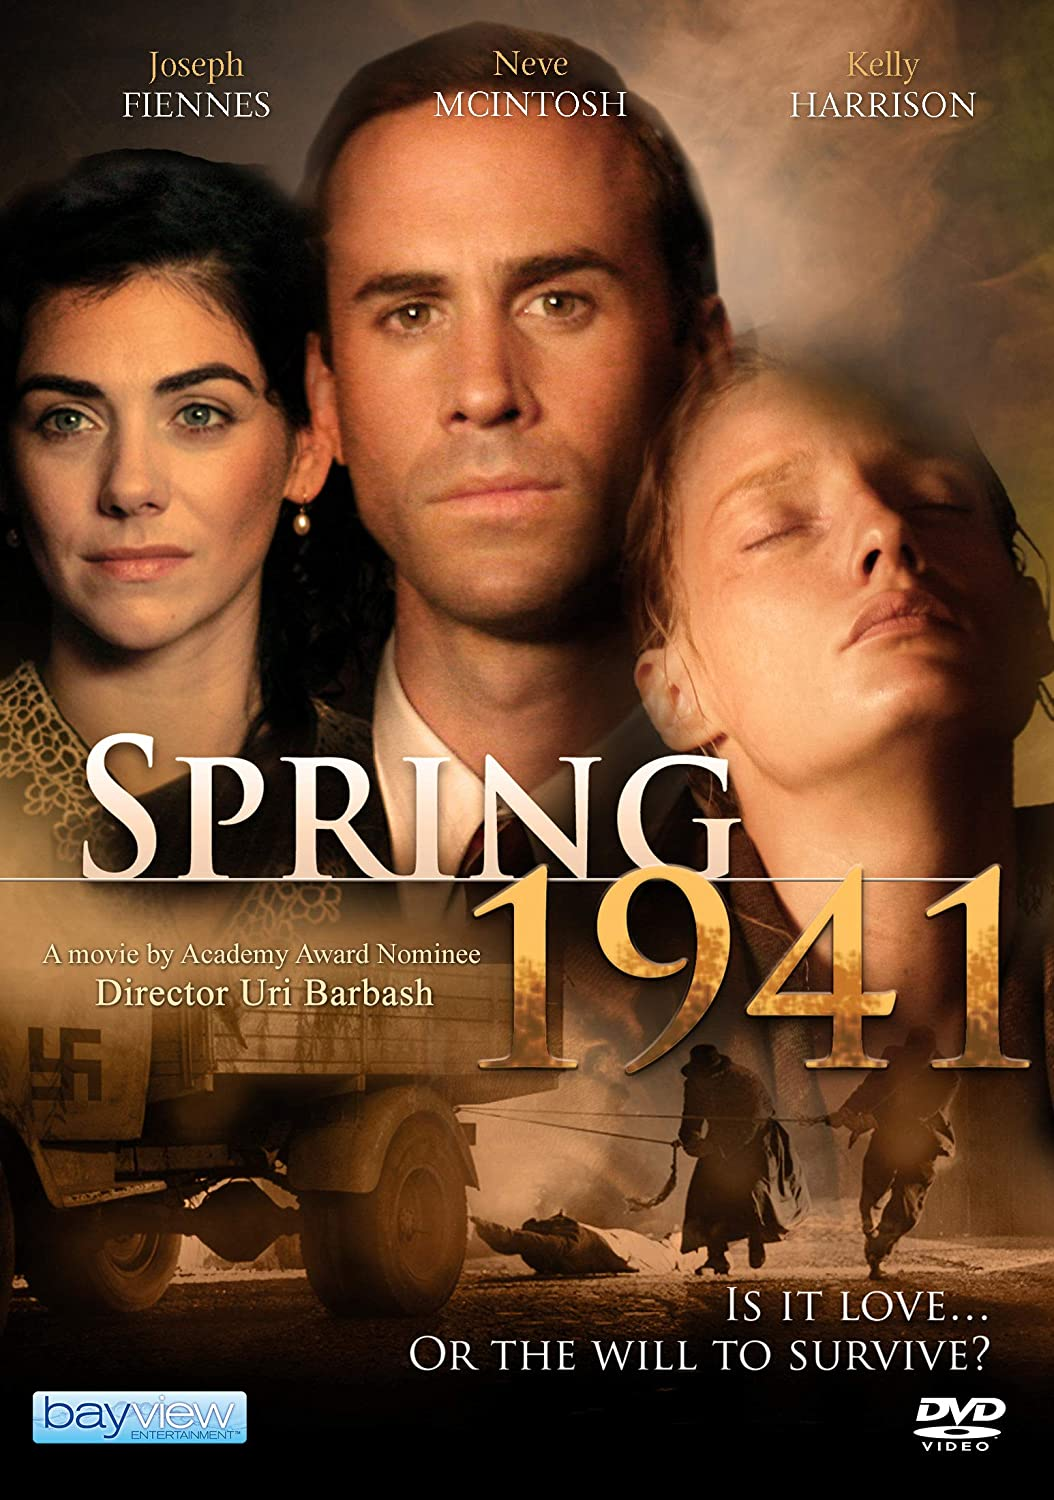 Spring 1941 Joseph Fiennes Claire Higgins Uri Barbash Movies Tv